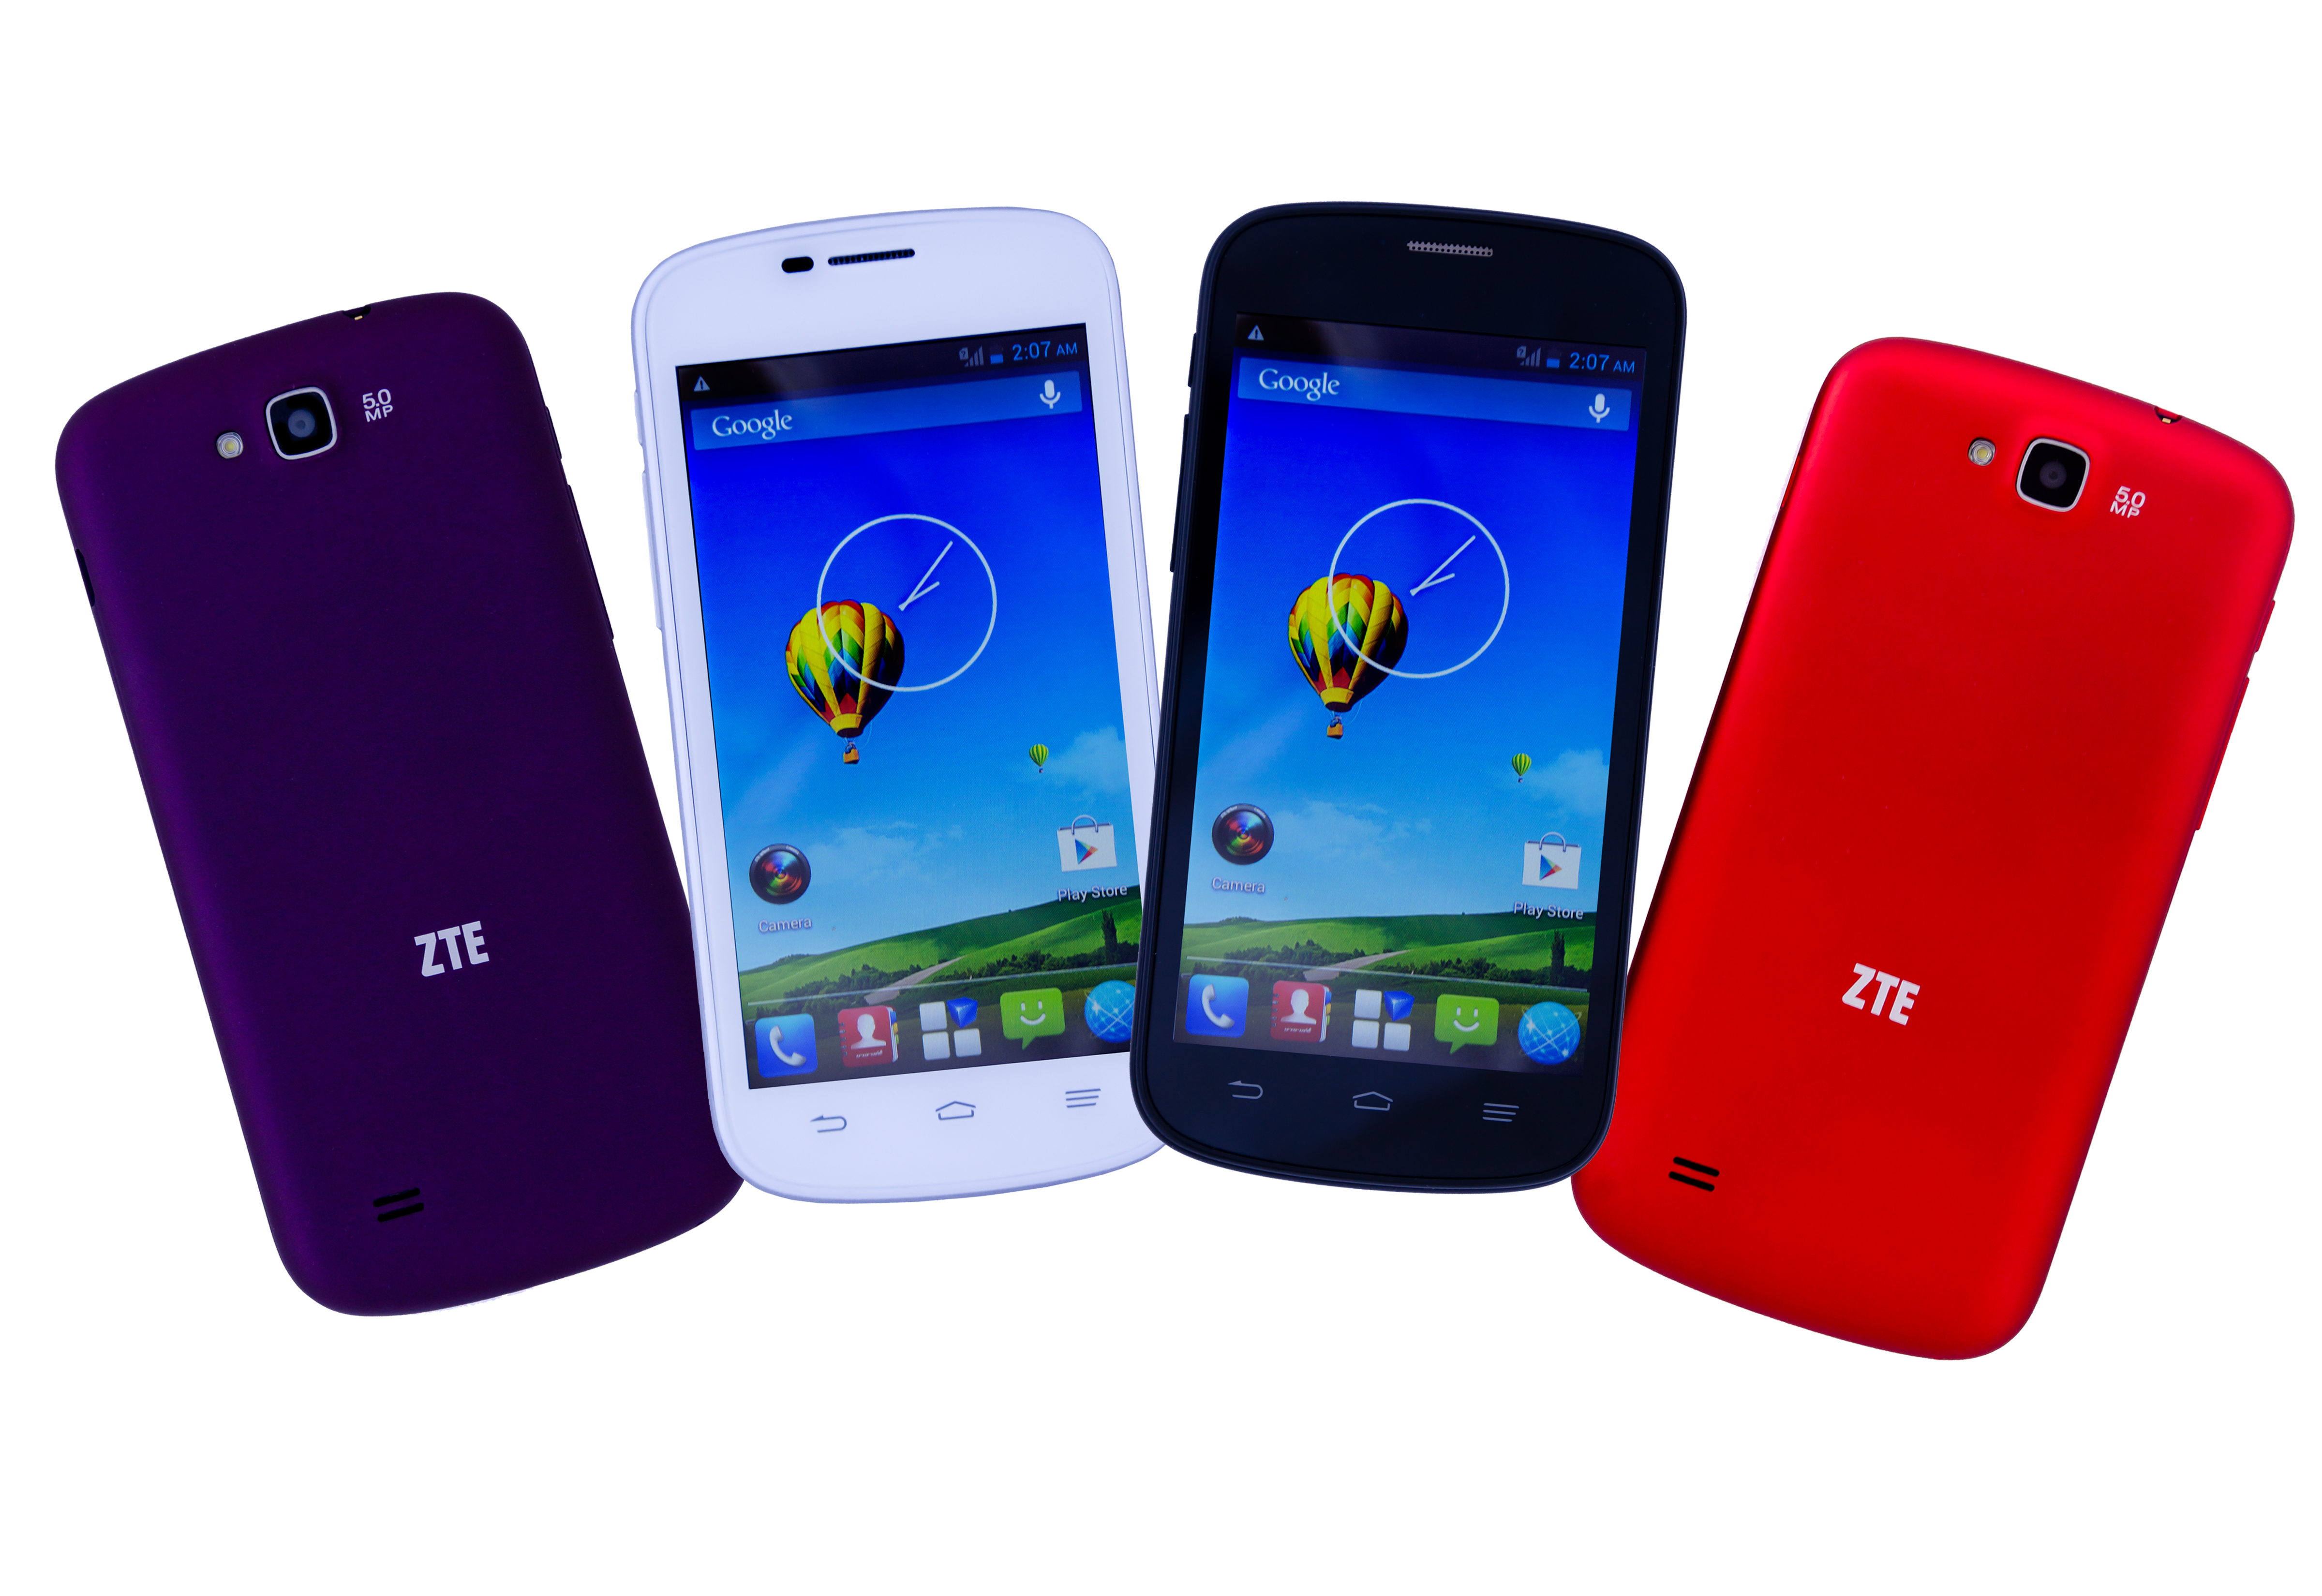 zte v795 caracteristicas the Store